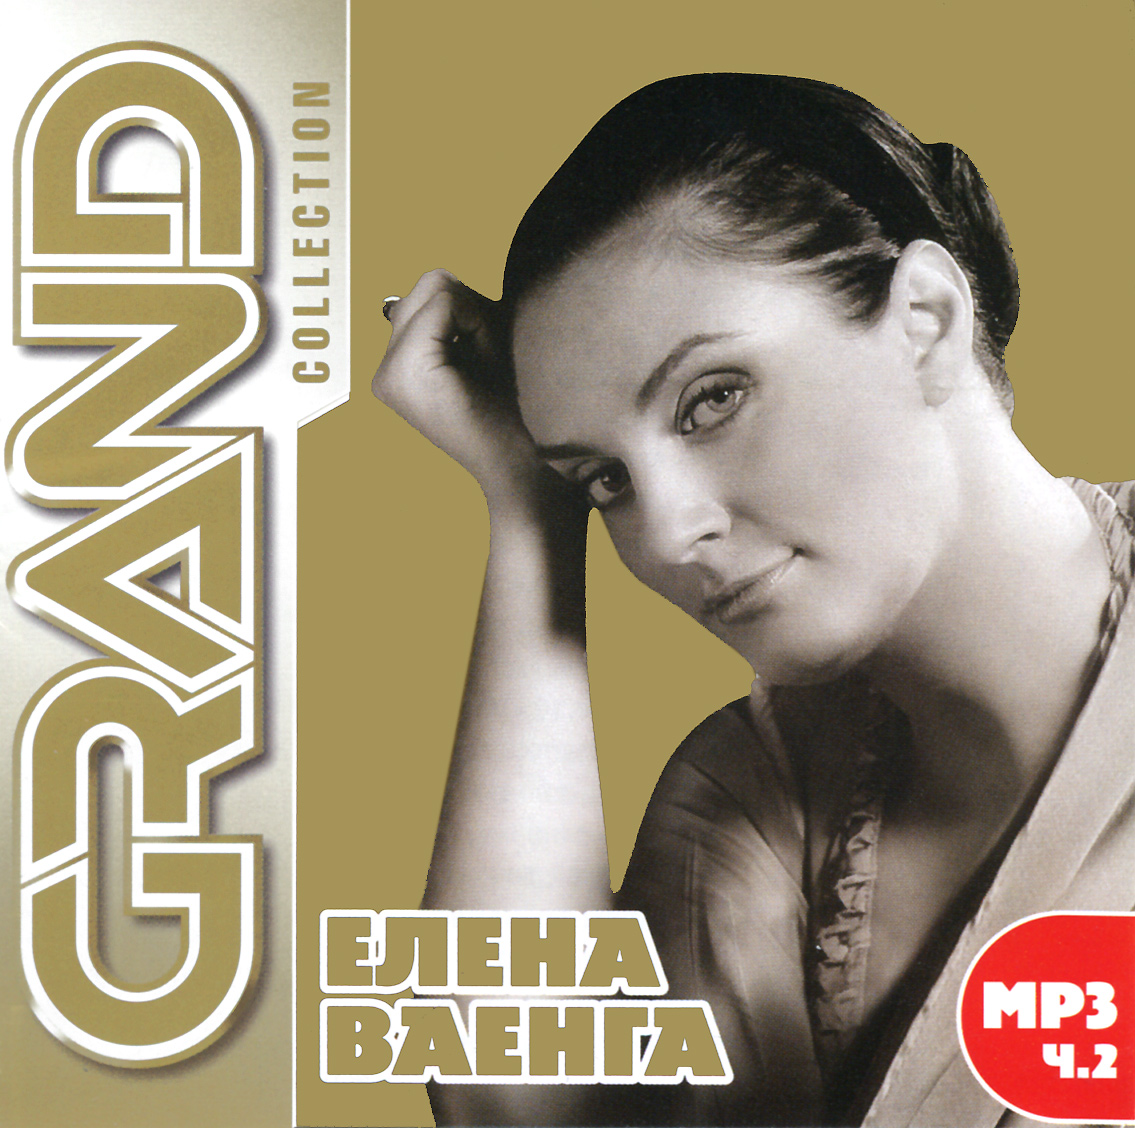 Елена Ваенга Grand Collection. Елена Ваенга. Часть 2 (mp3) виталий аксенов grand collection виталий аксенов